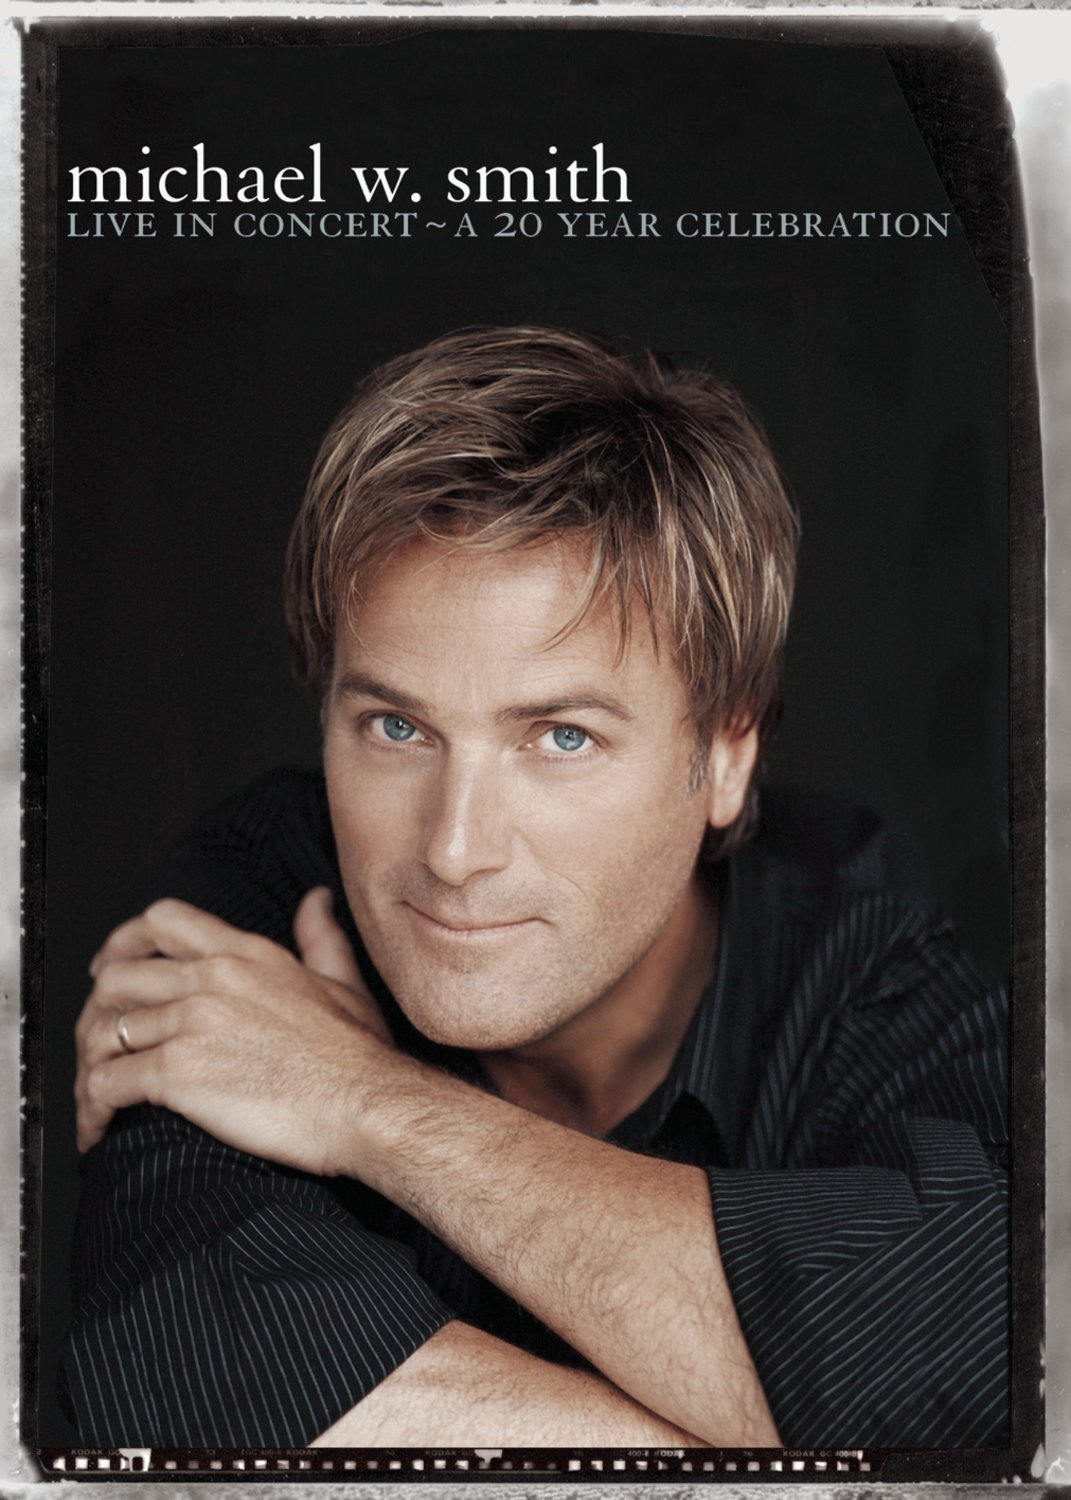 Michael W. Smith - Live in Concert: A 20 Year Celebration